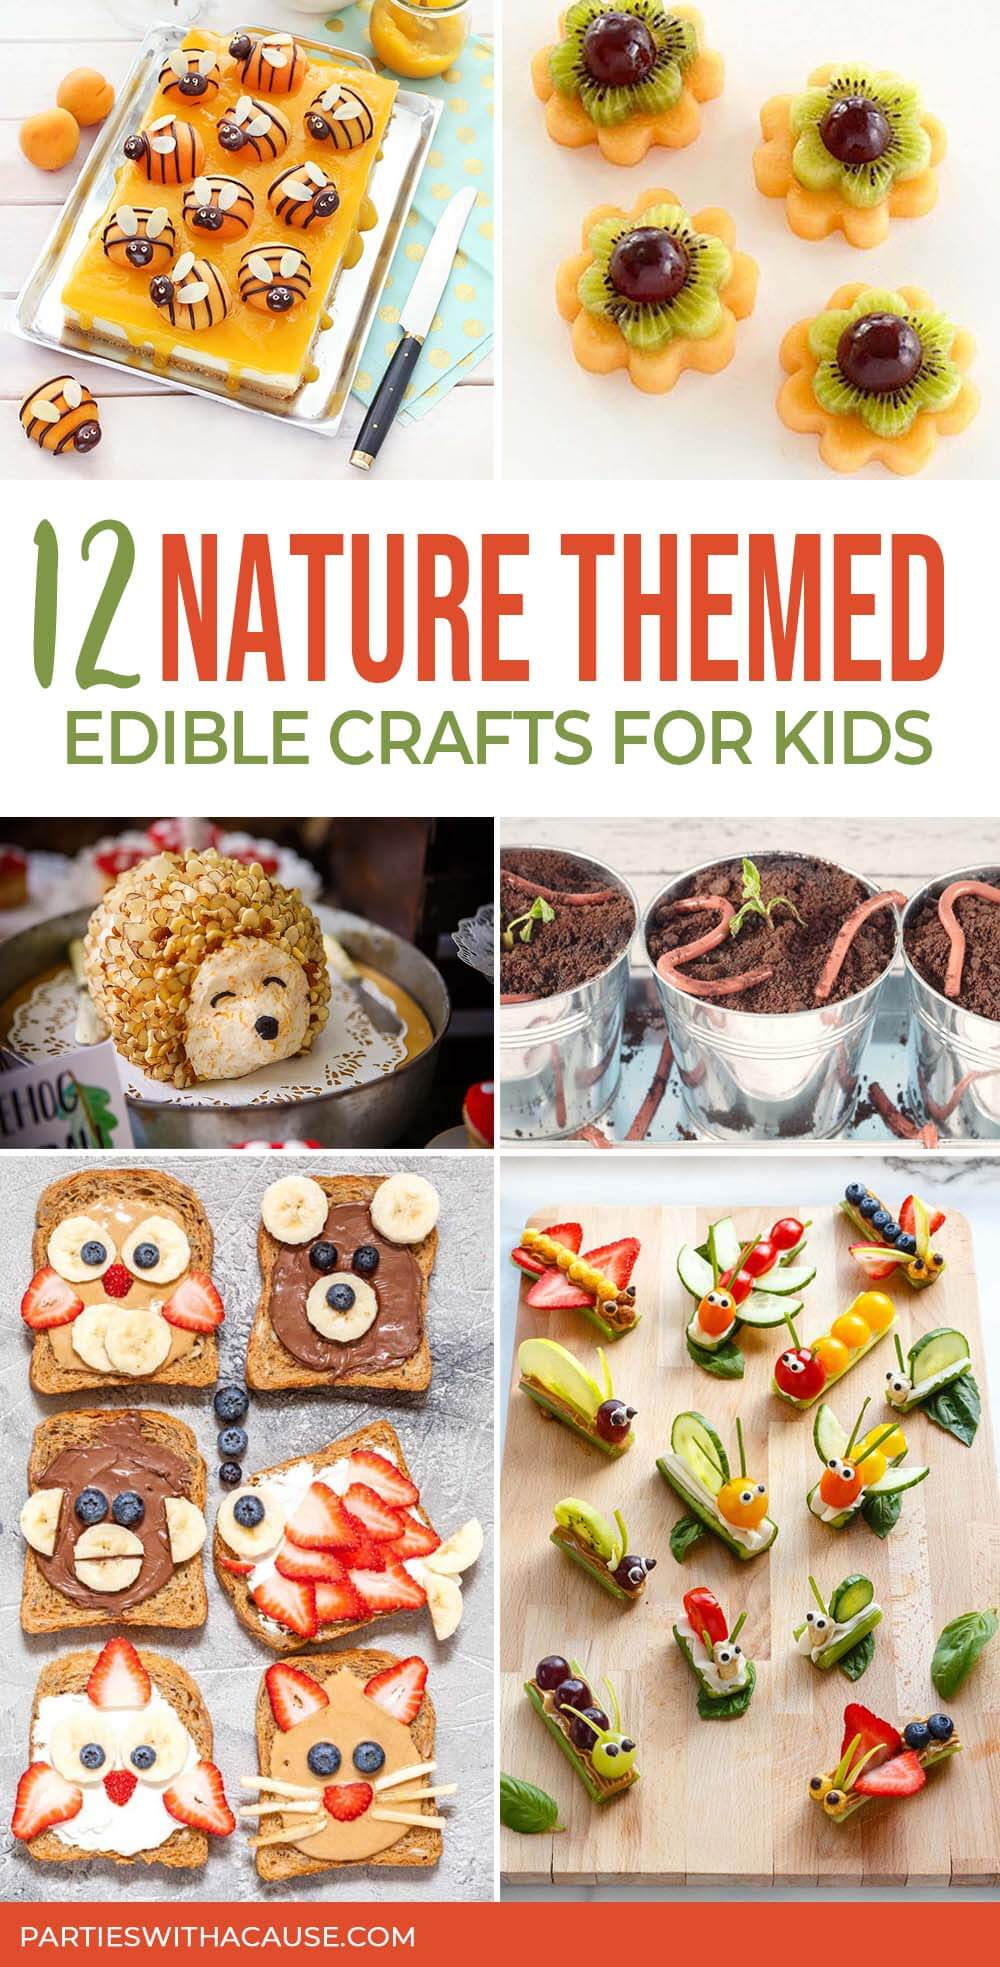 12 nature snacks for kids by Salt Lake party stylist